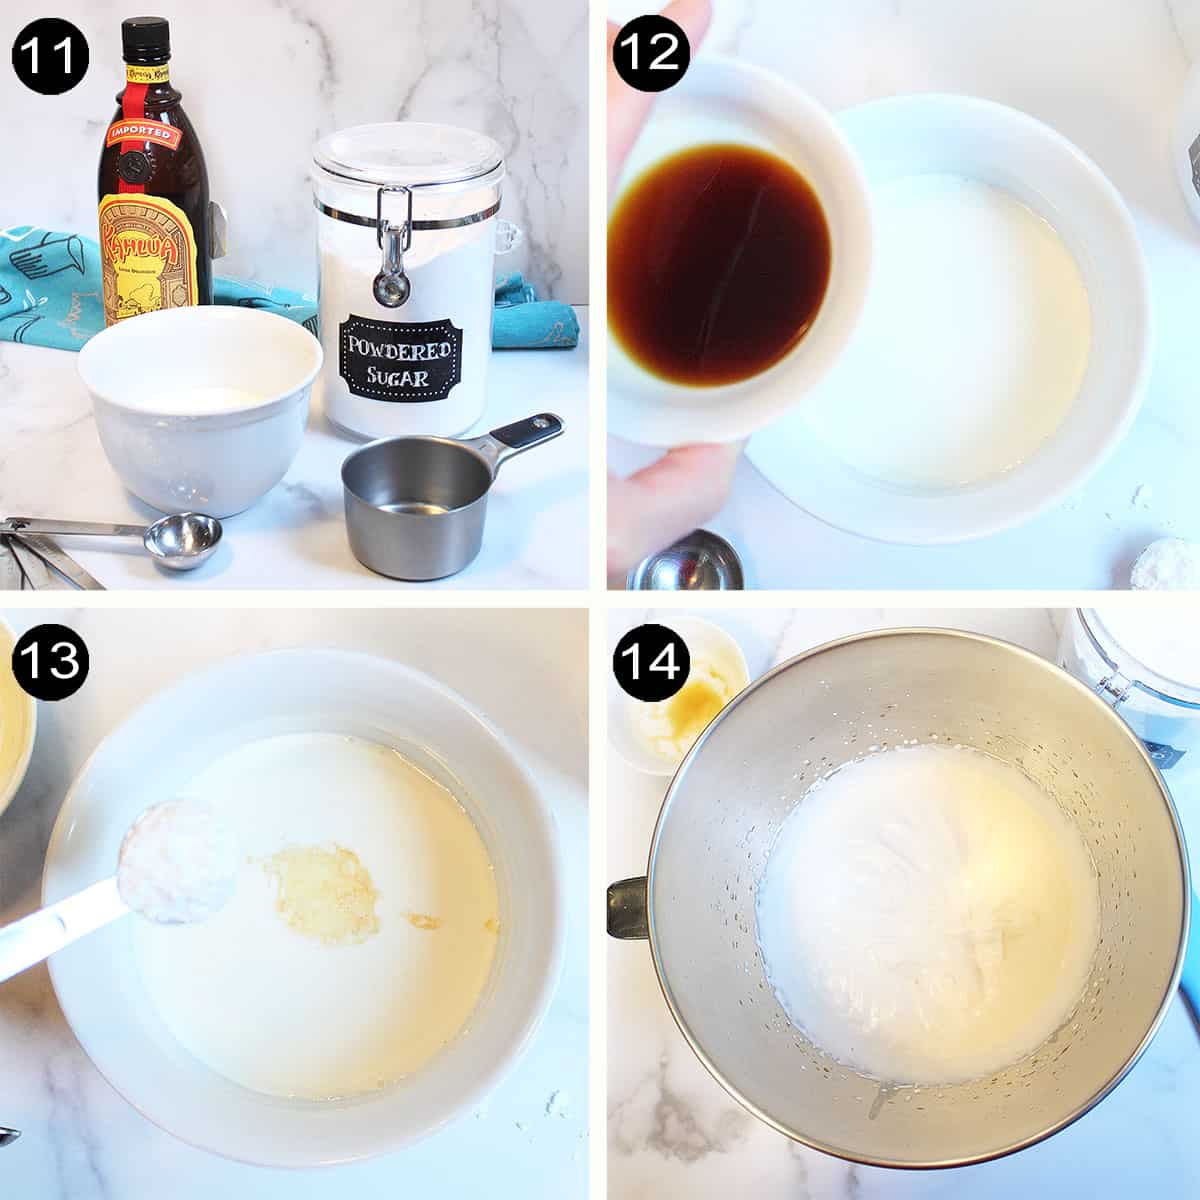 Steps to make kahlua whipped cream topping.